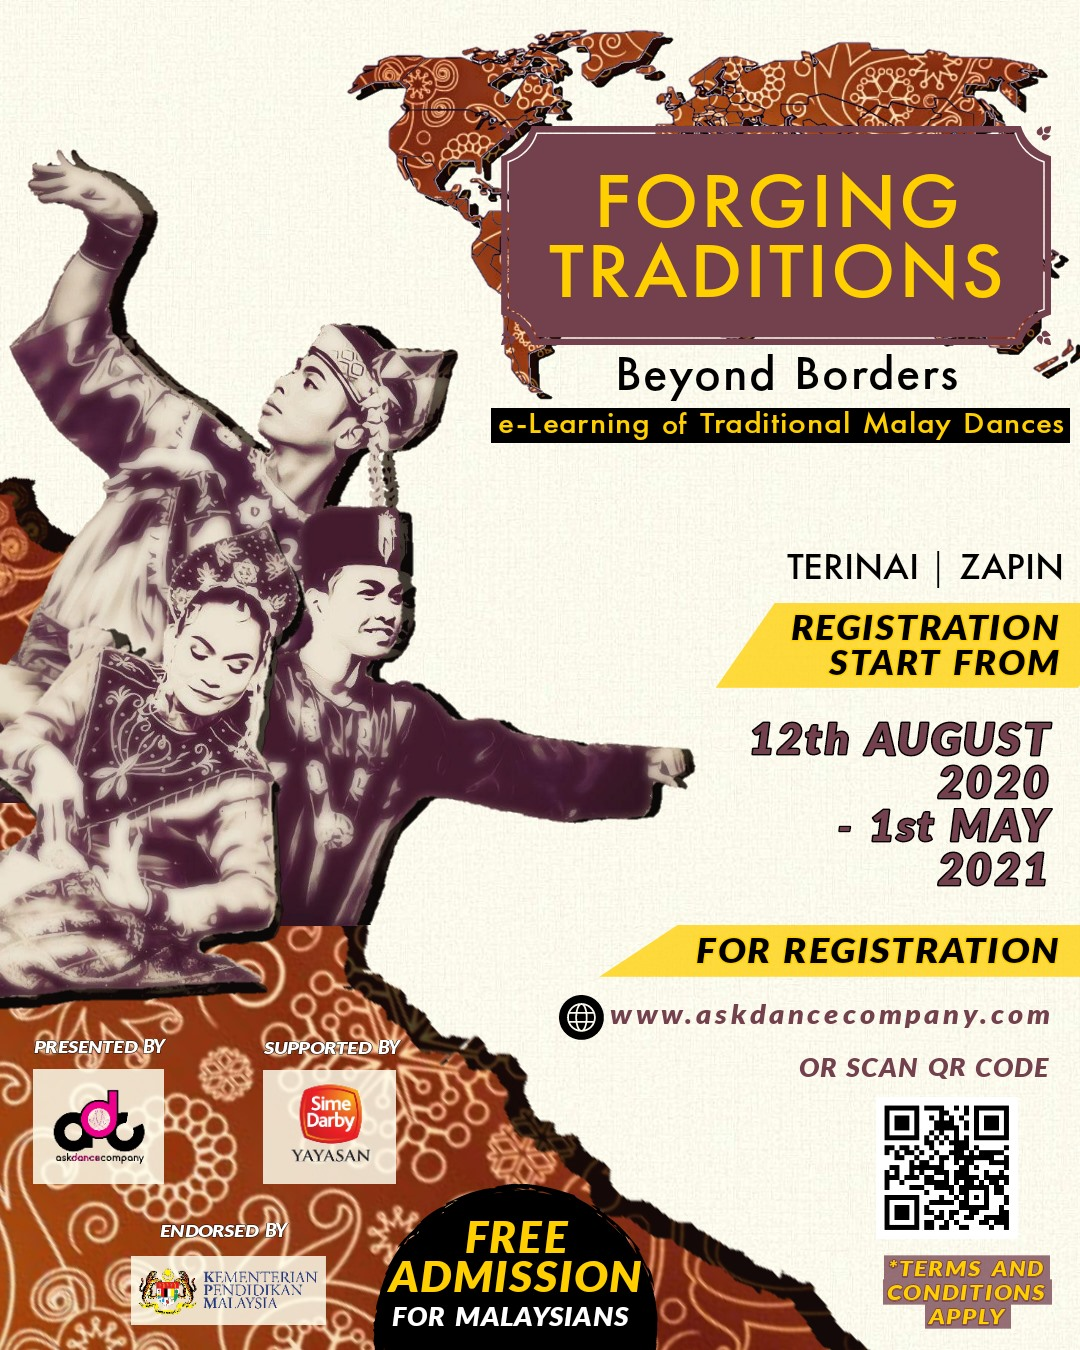 FORGING TRADITIONS BEYOND BORDERS, eLearning on Malay Traditional Dances